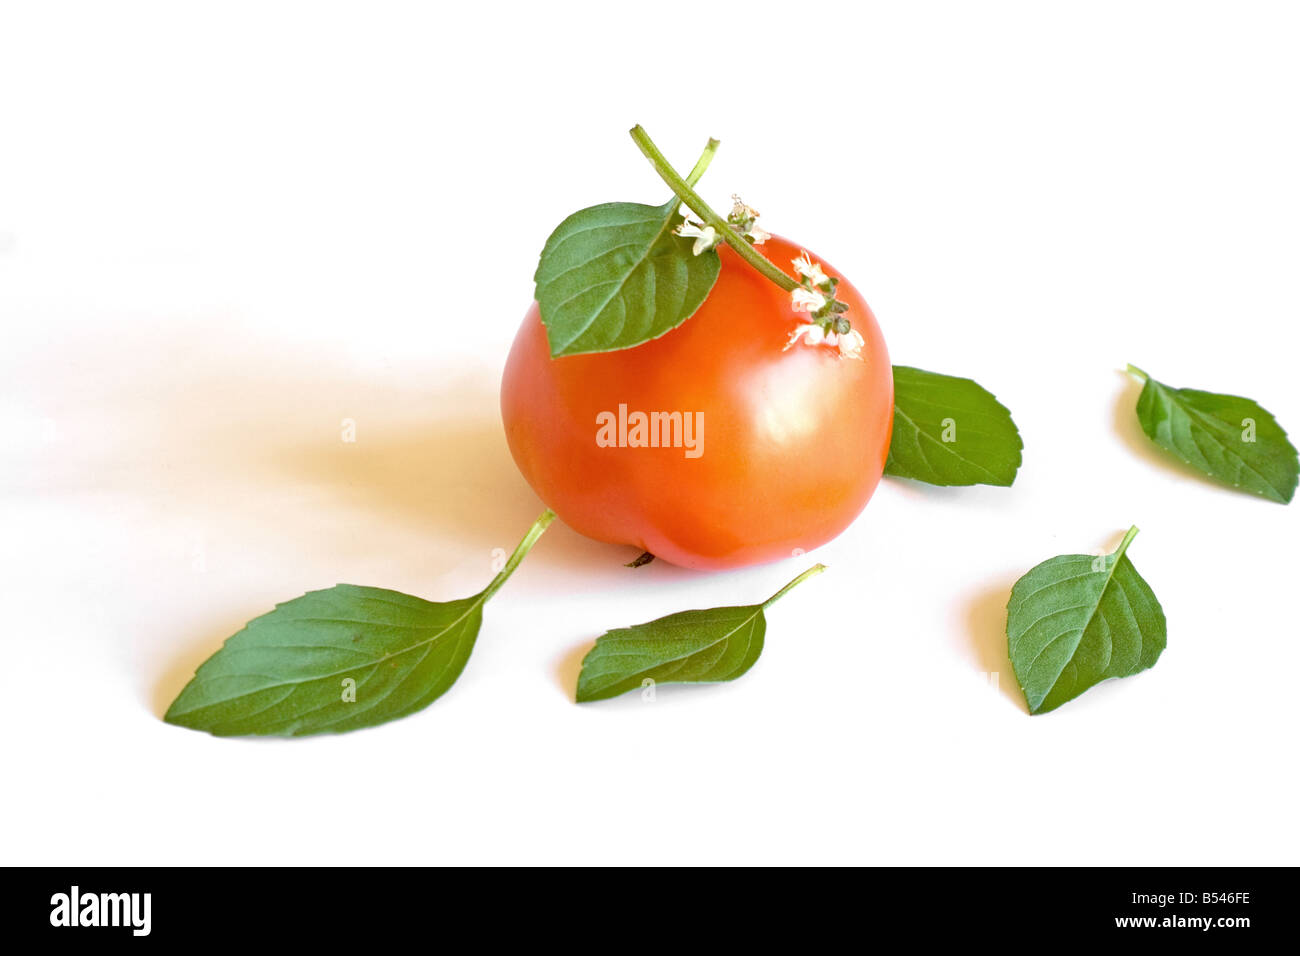 Basil leaves and tomato - Stock Image